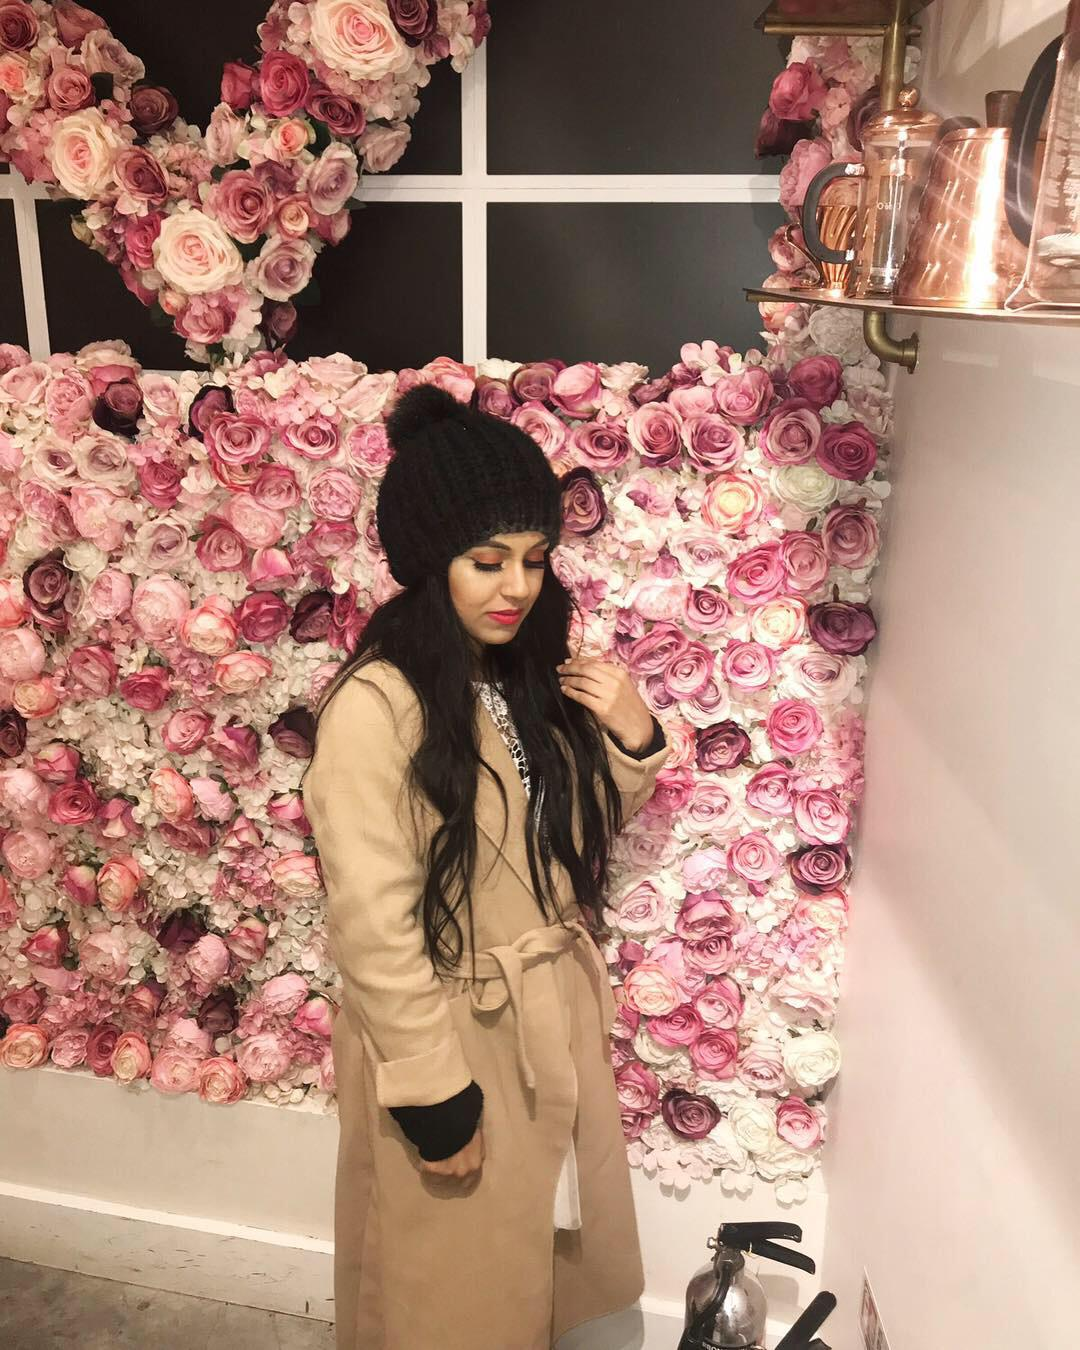 photo of Sayrish standing in front of a wall of pink flowers